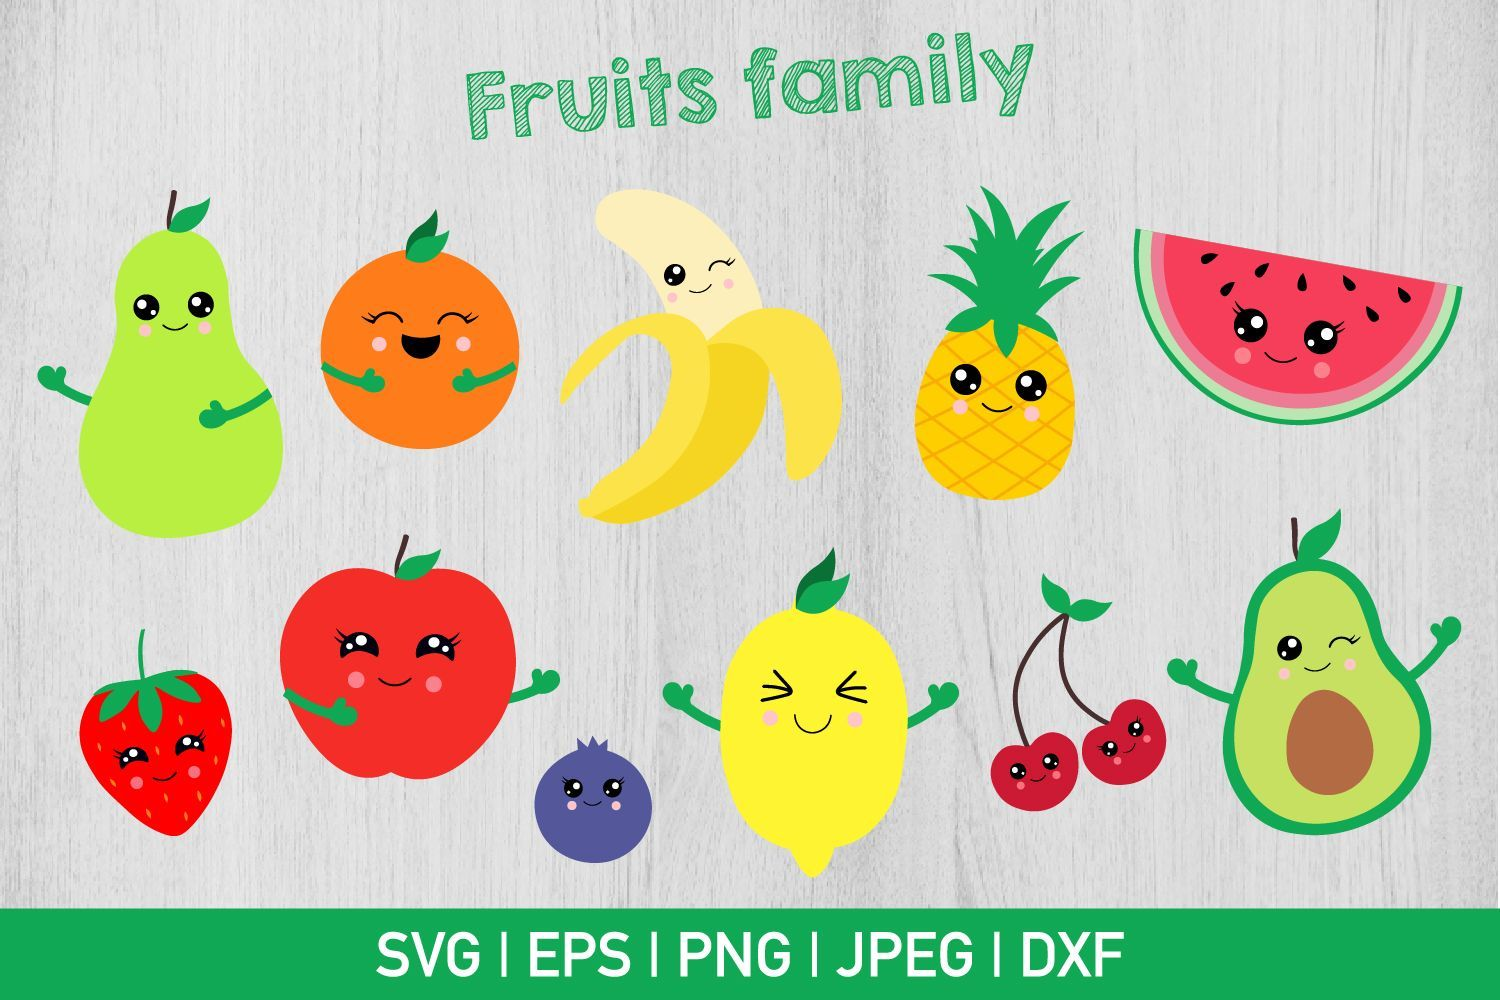 Fruits Family Bundle Graphic by CrazyPandaSvg - Creative Fabrica #programingsoftware Can be used with the Silhouette cutting machines, Cricut, or other program/software that accept these files. - After purchasing you... #programingsoftware